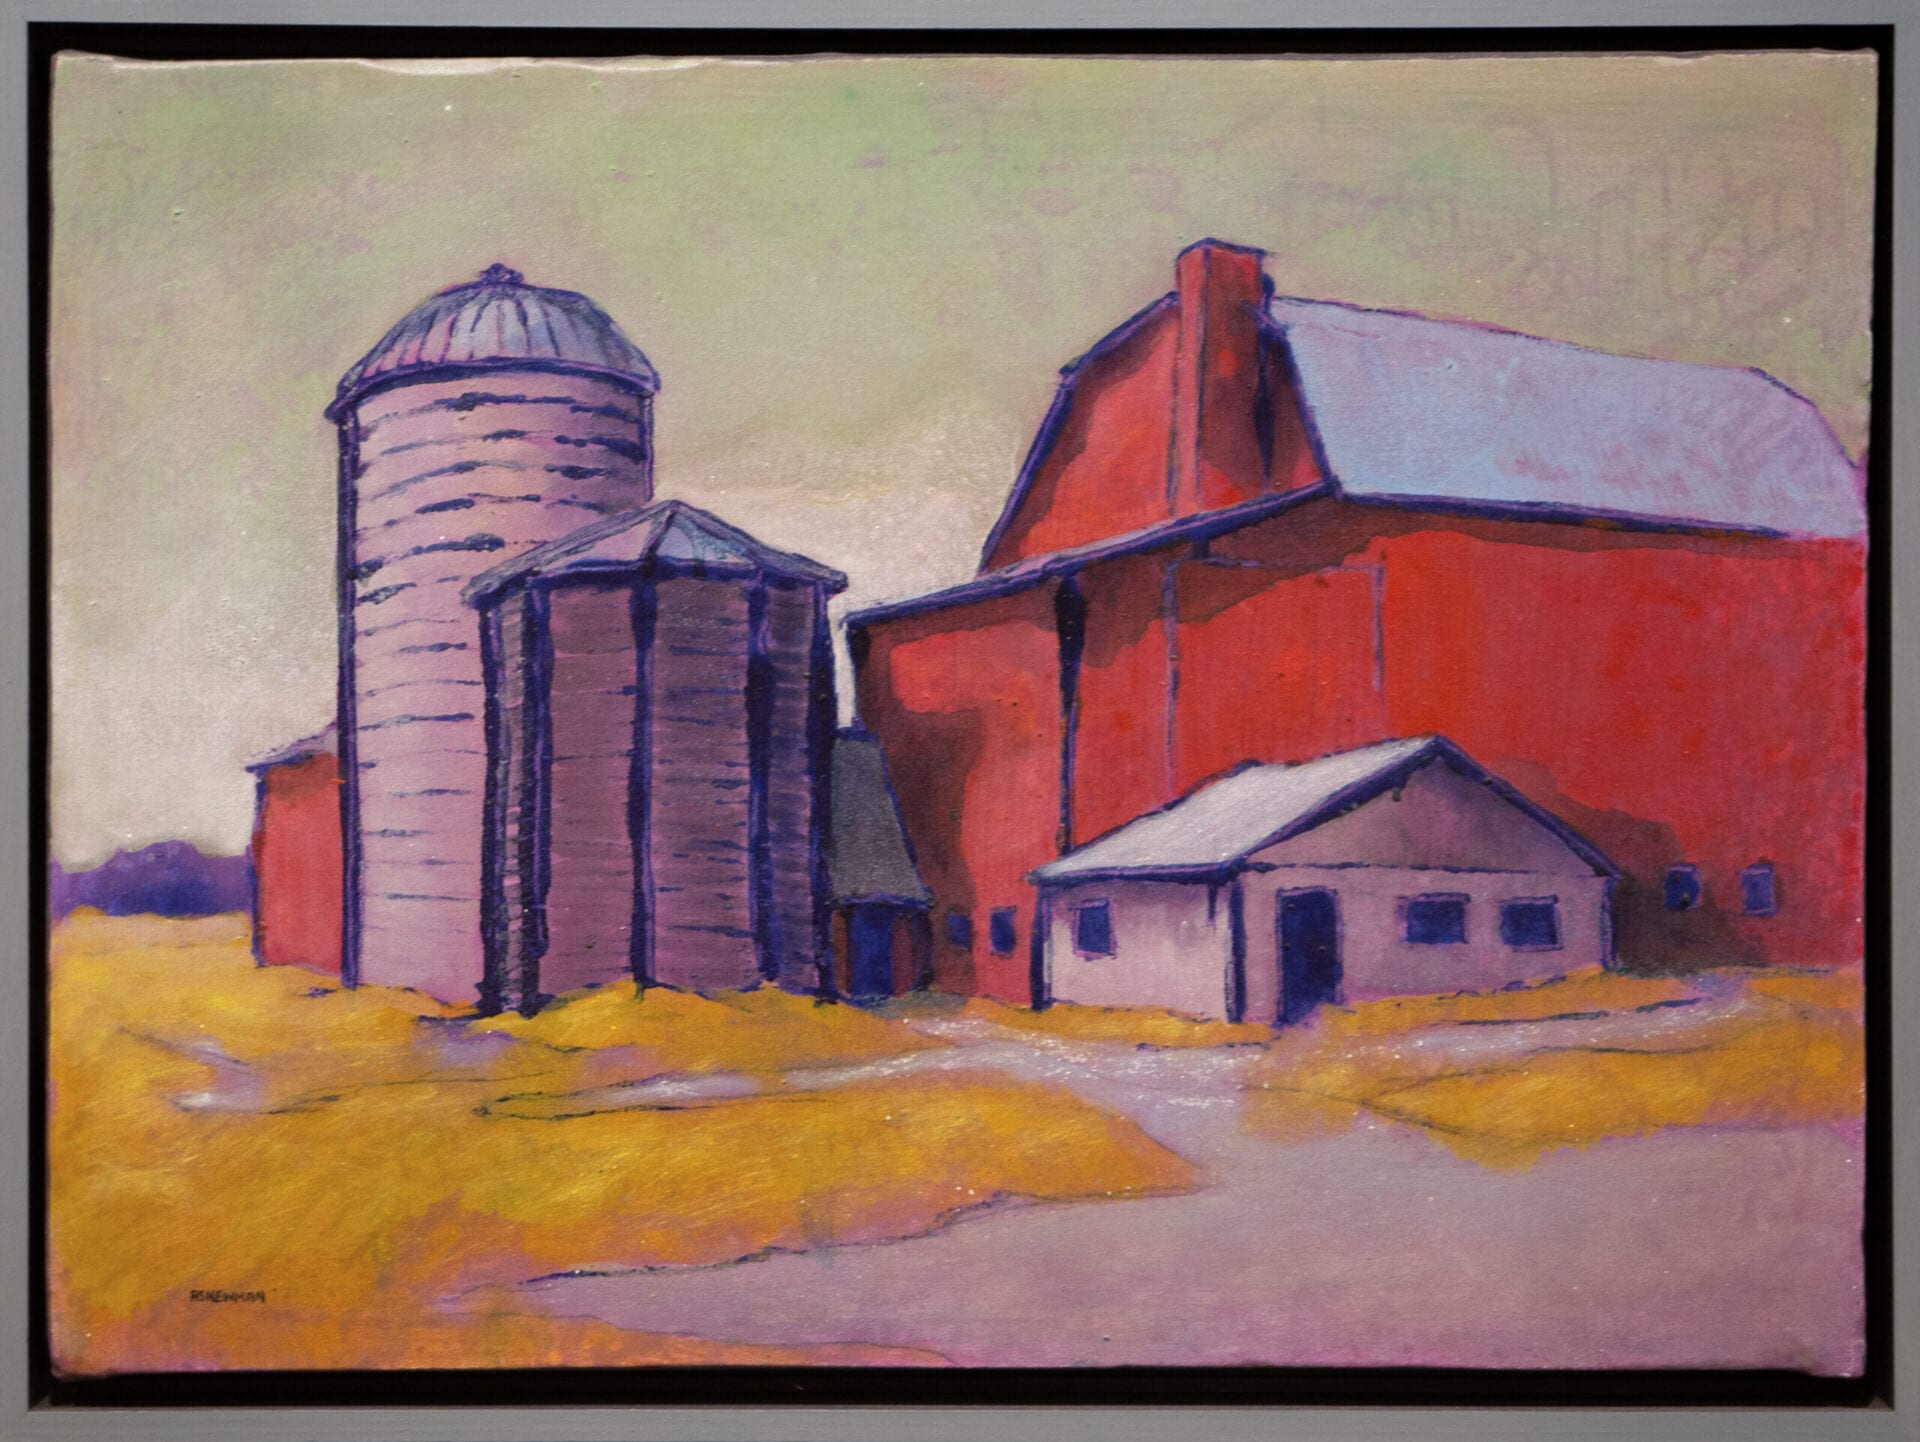 Barn and Silos | Andy Newman | Oil on Panel | 20.5 x 25.5""